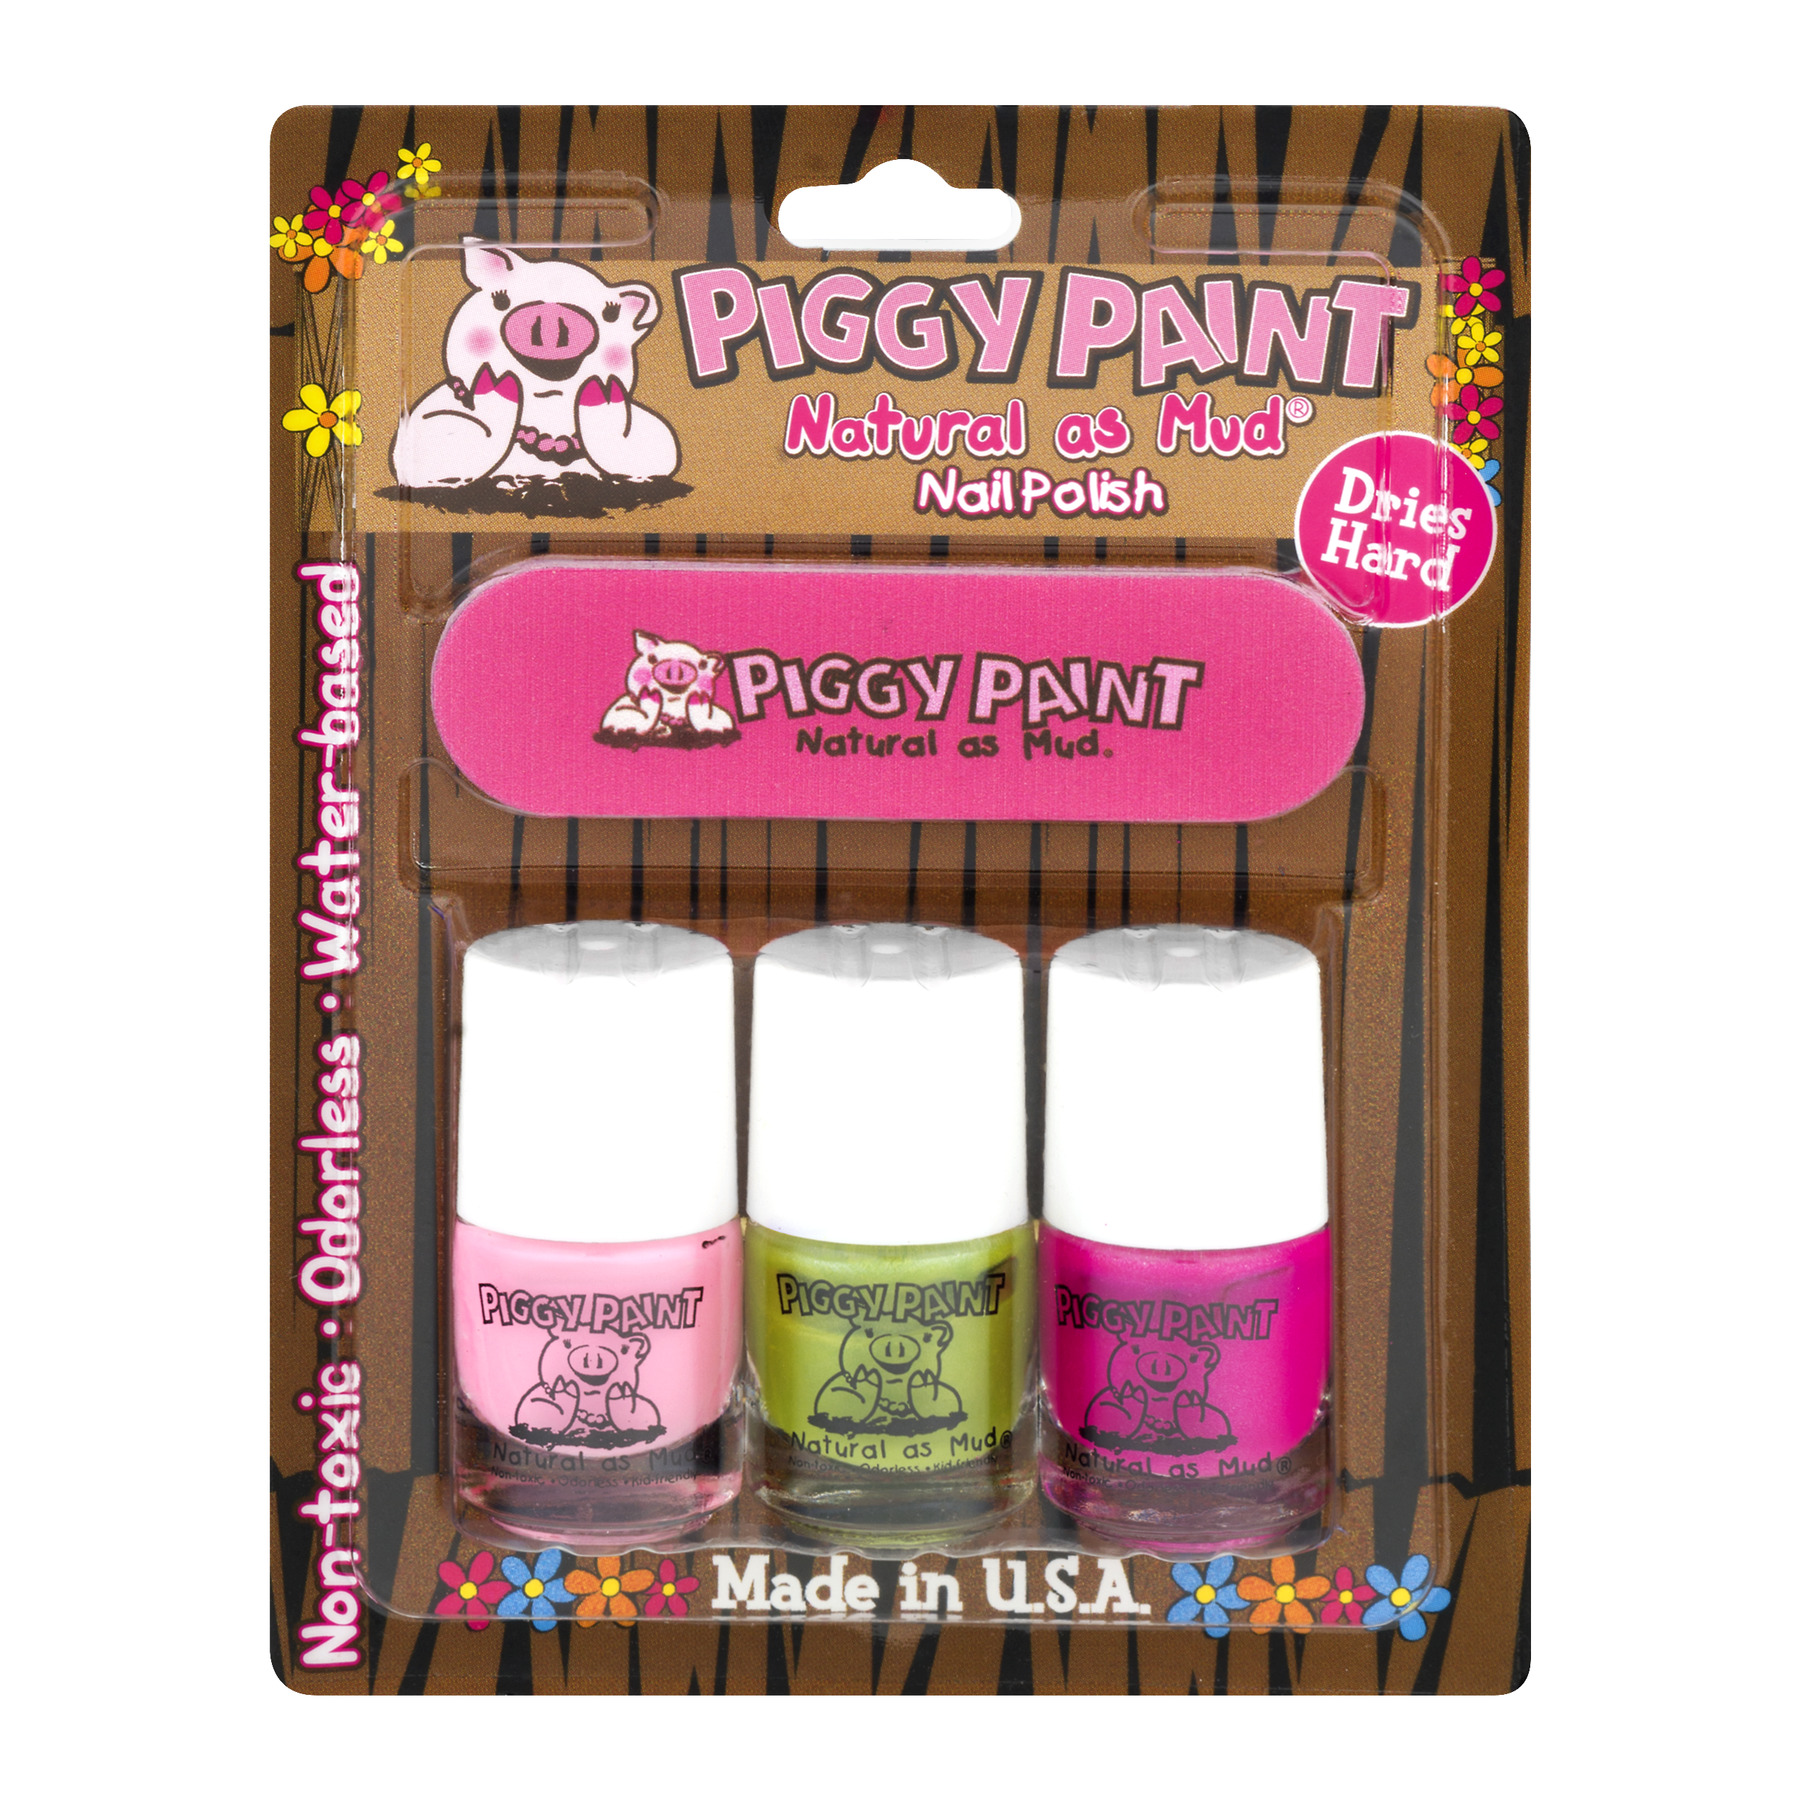 Piggy Paint Natural As Mud Nail Polish - 4 PC, 4.0 PIECE(S)